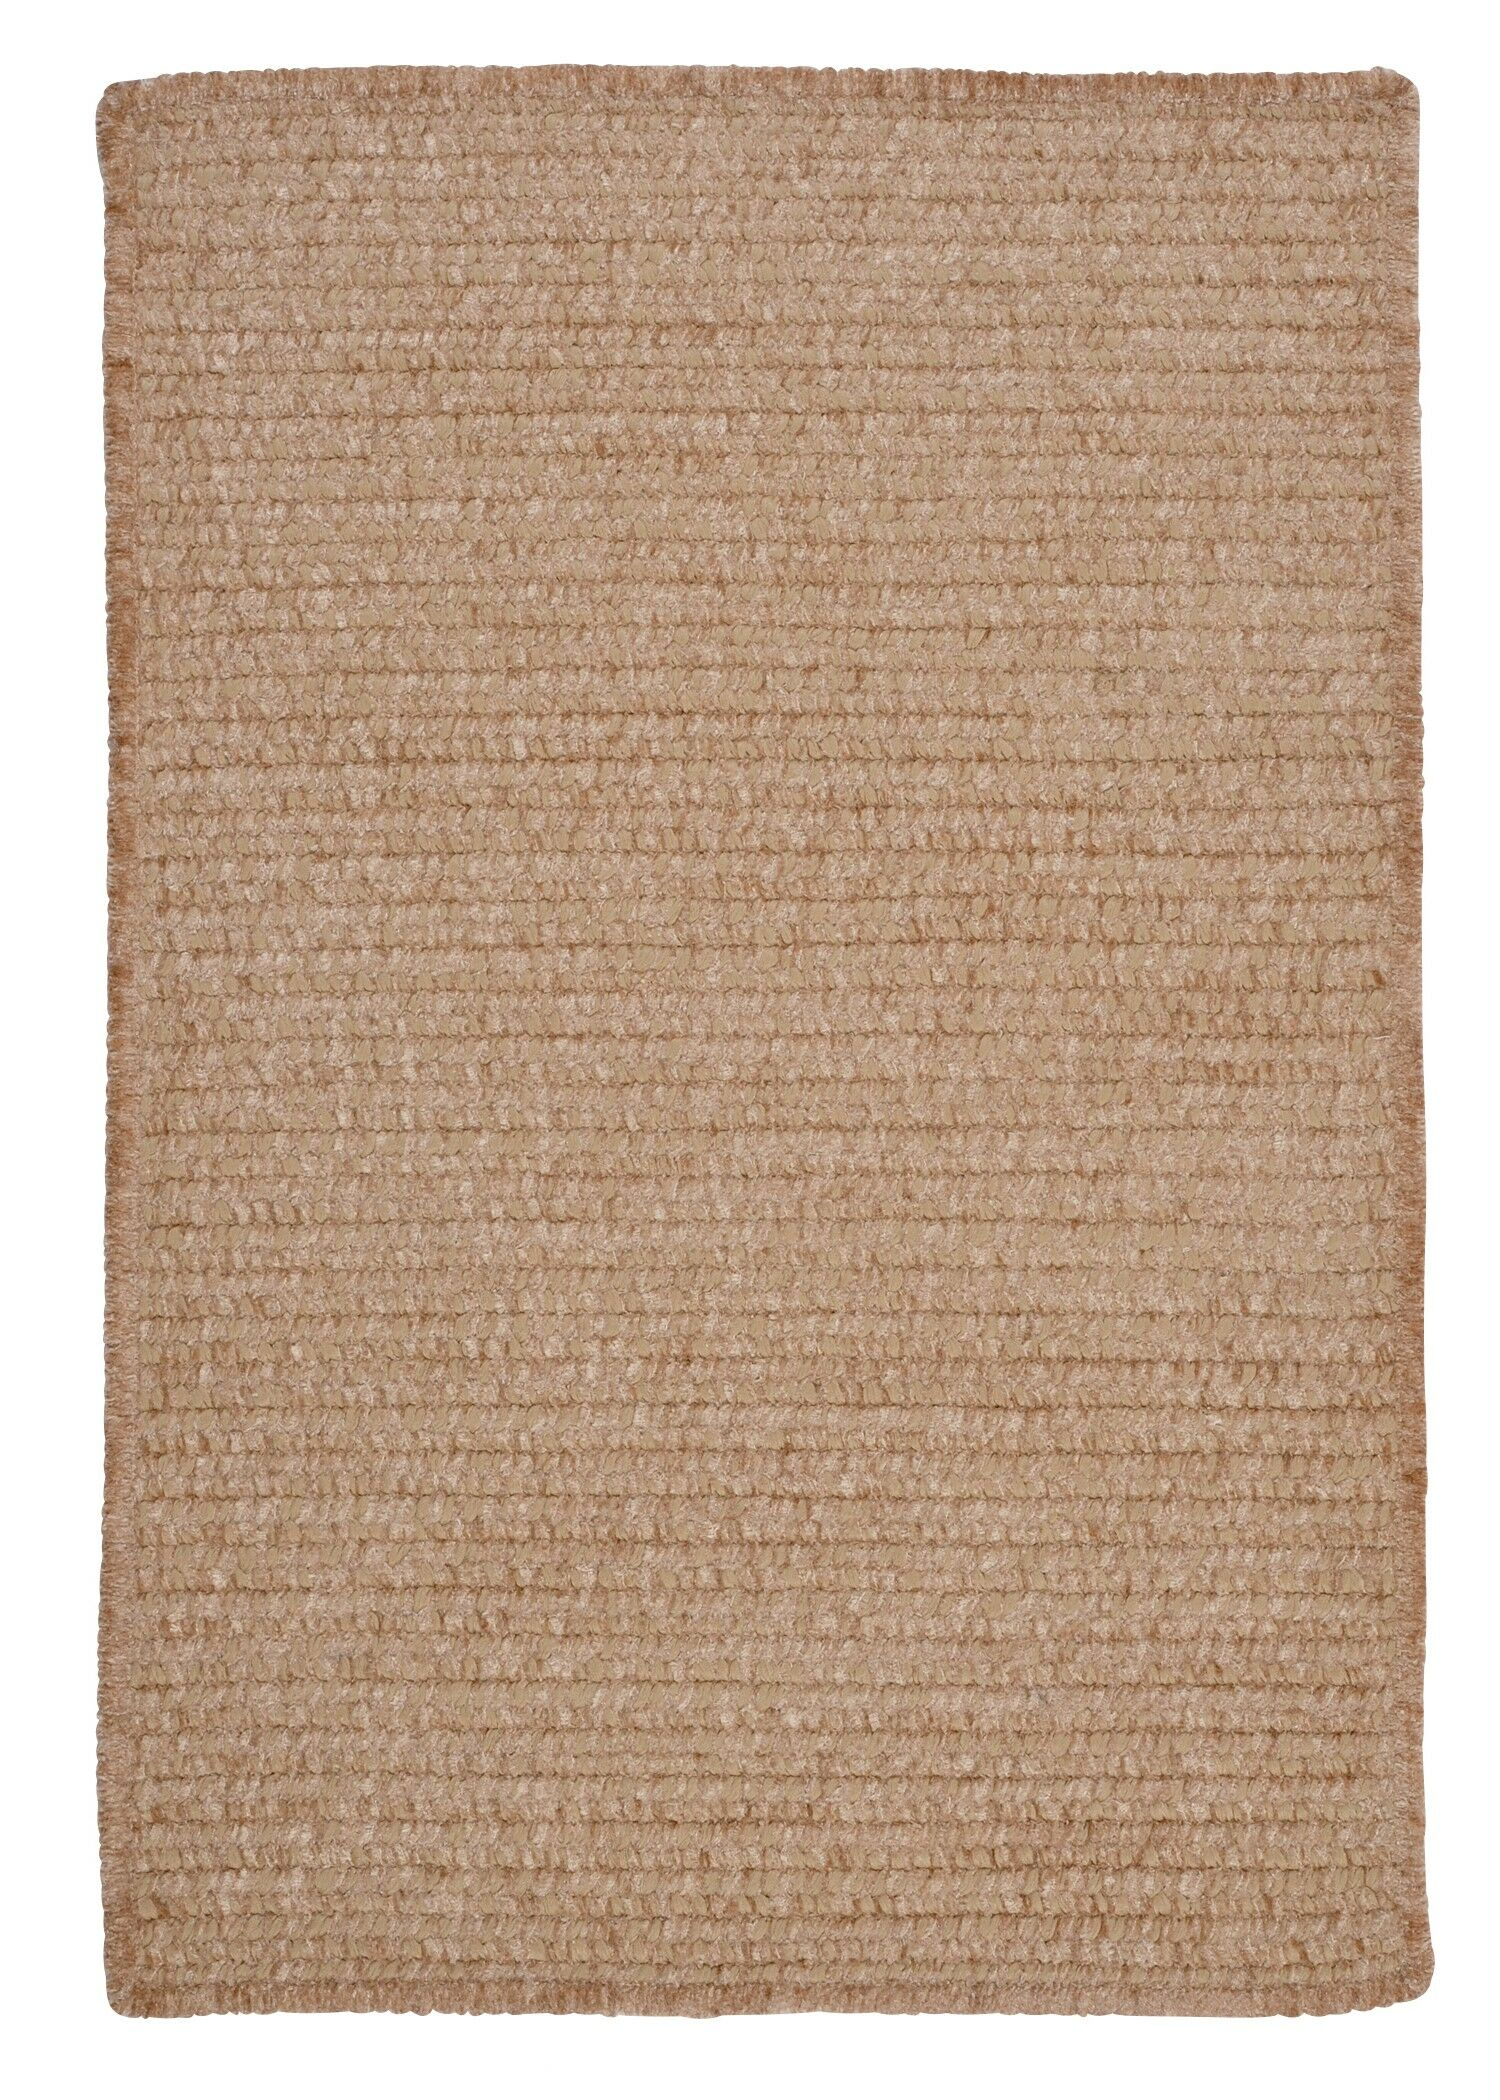 Gibbons Sand Bar Indoor/Outdoor Area Rug Rug Size: Rectangle 8' x 11'